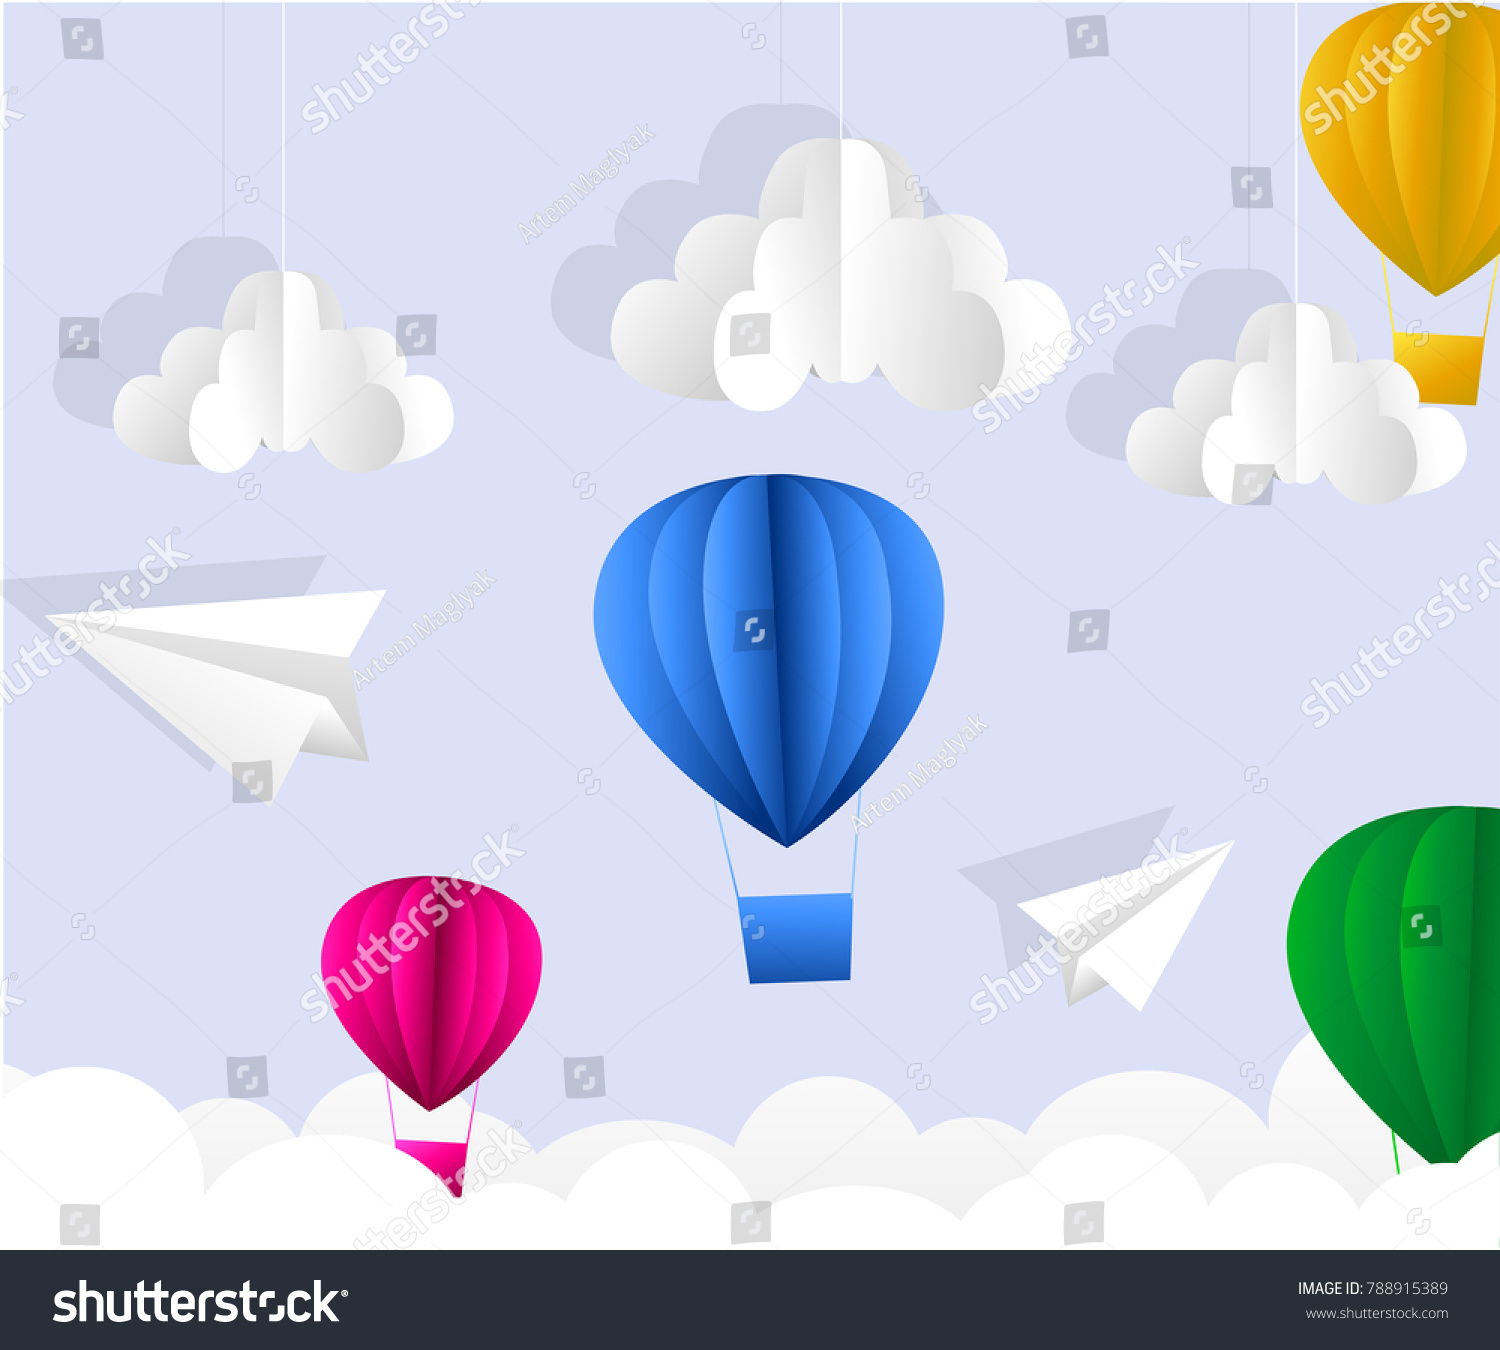 Illustration clouds suns hot air balloon stock vector 788915389 illustration of clouds suns and hot air balloon origami flying on the sky bringing on jeuxipadfo Choice Image